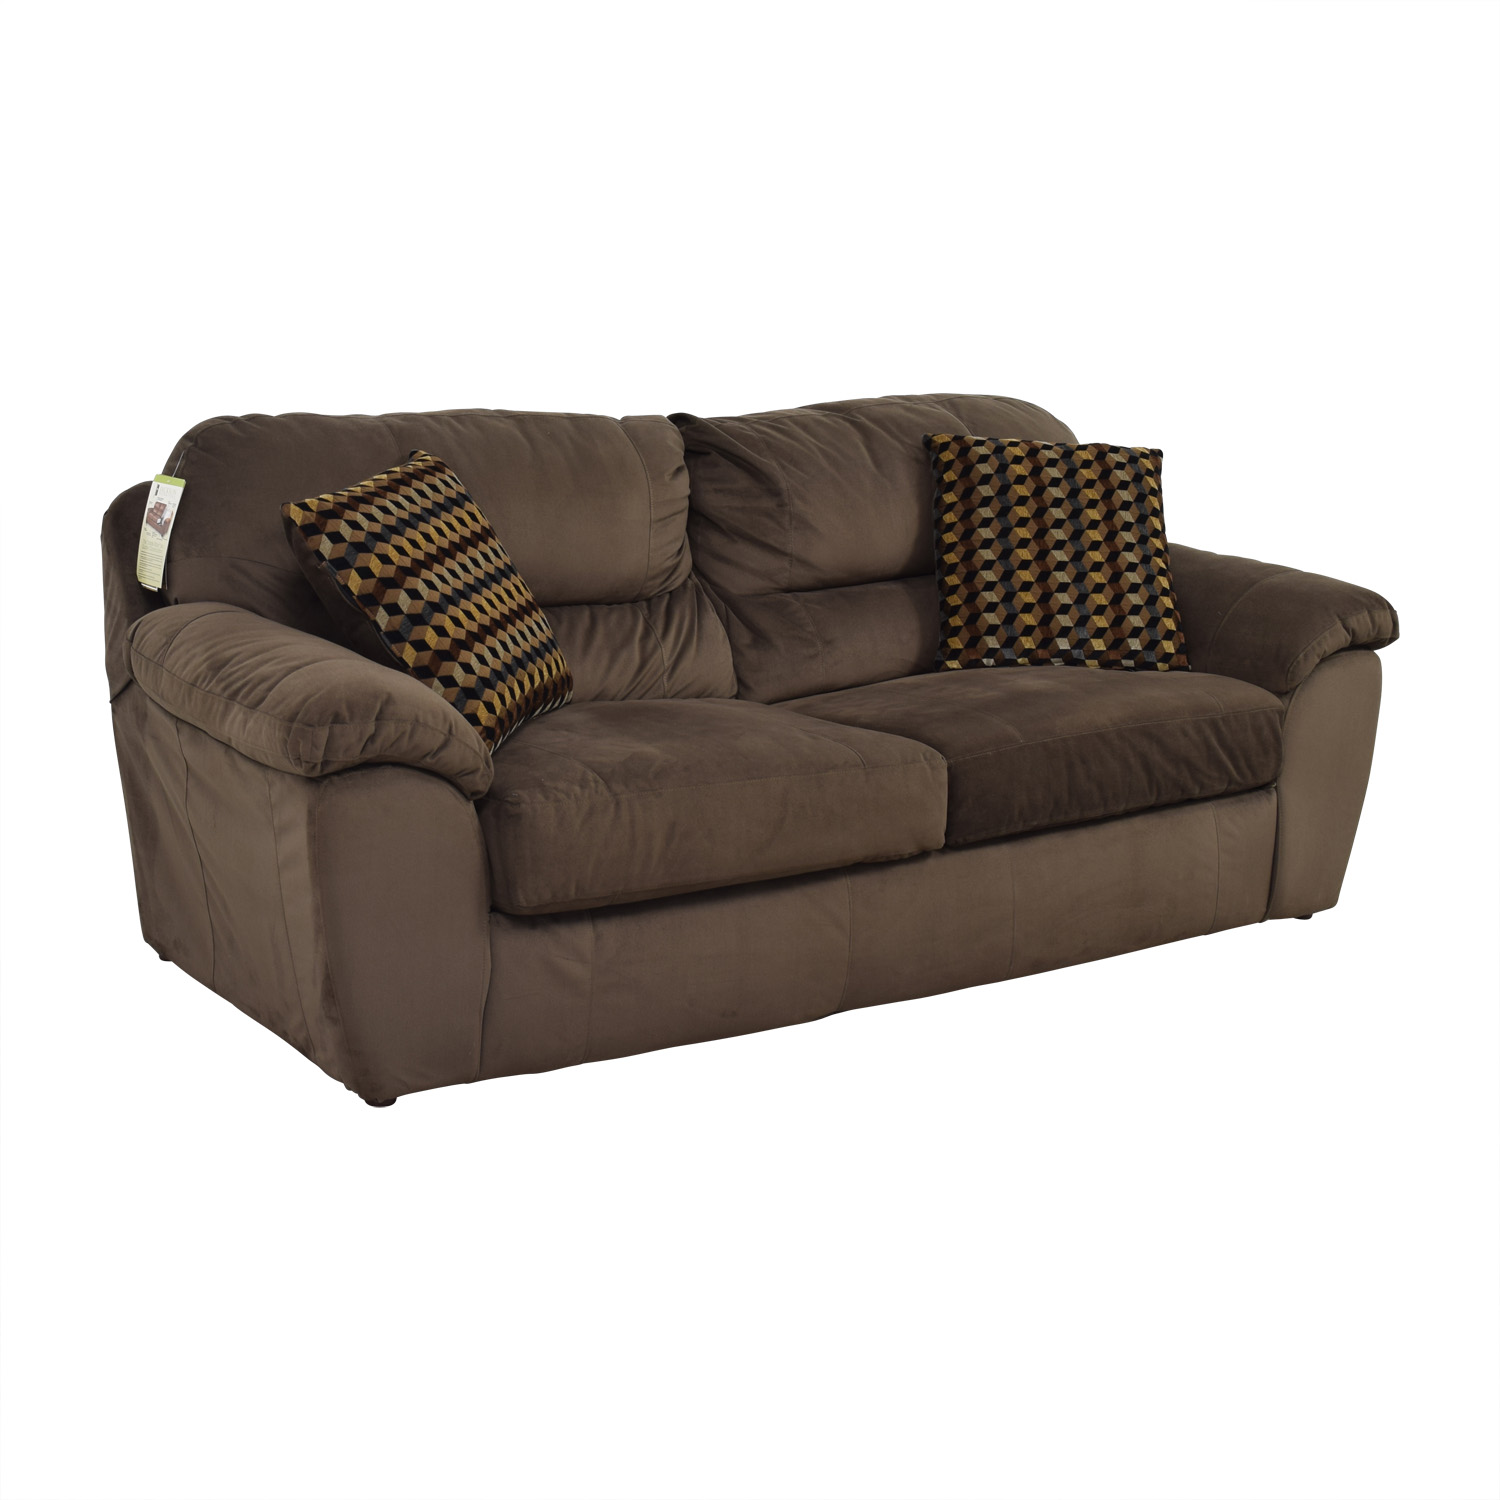 Baileys Sofas And Chairs Of Beverley Bobs Discount Furn - Home Design Ideas